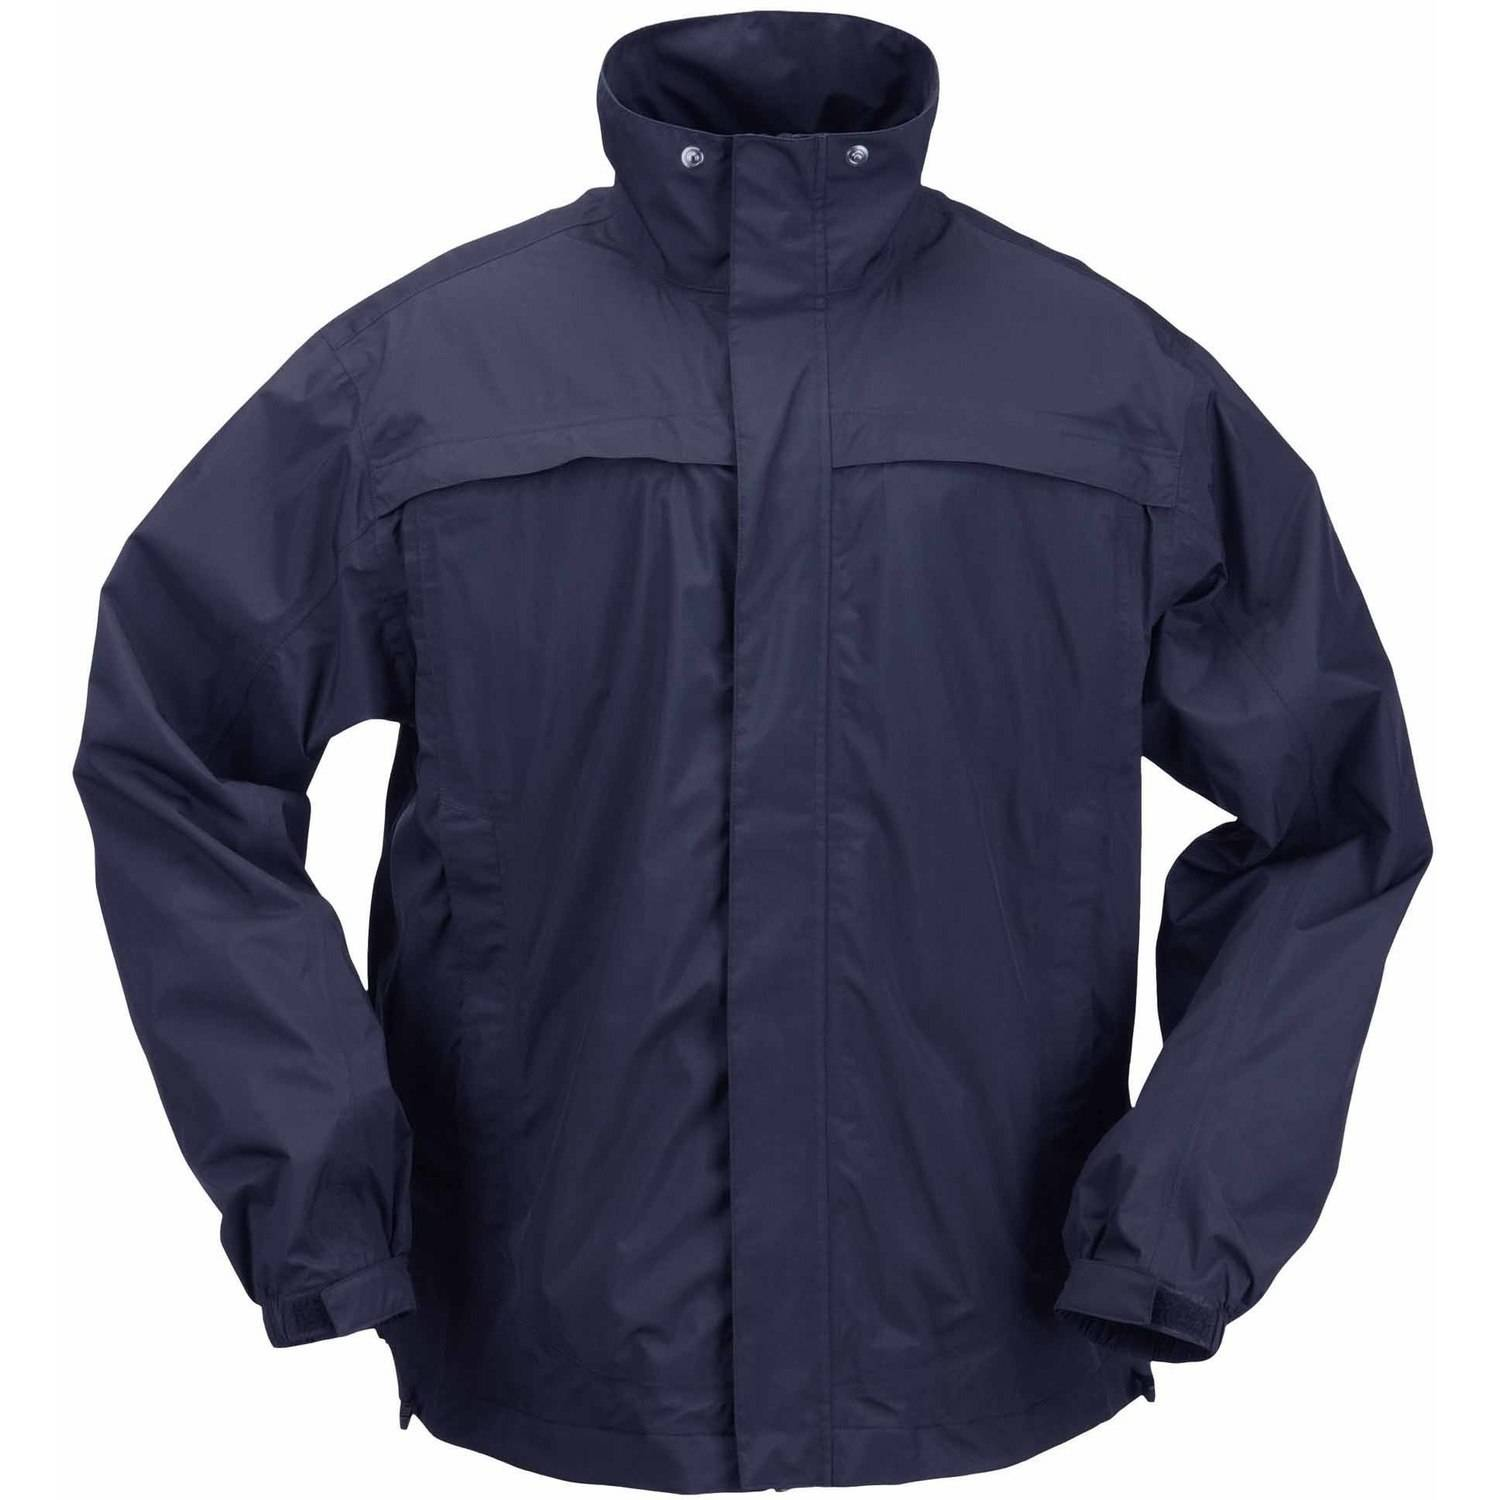 5.11 Tactical Tac Dry Rain Shell Jacket, Dark Navy by 5.11 Tactical